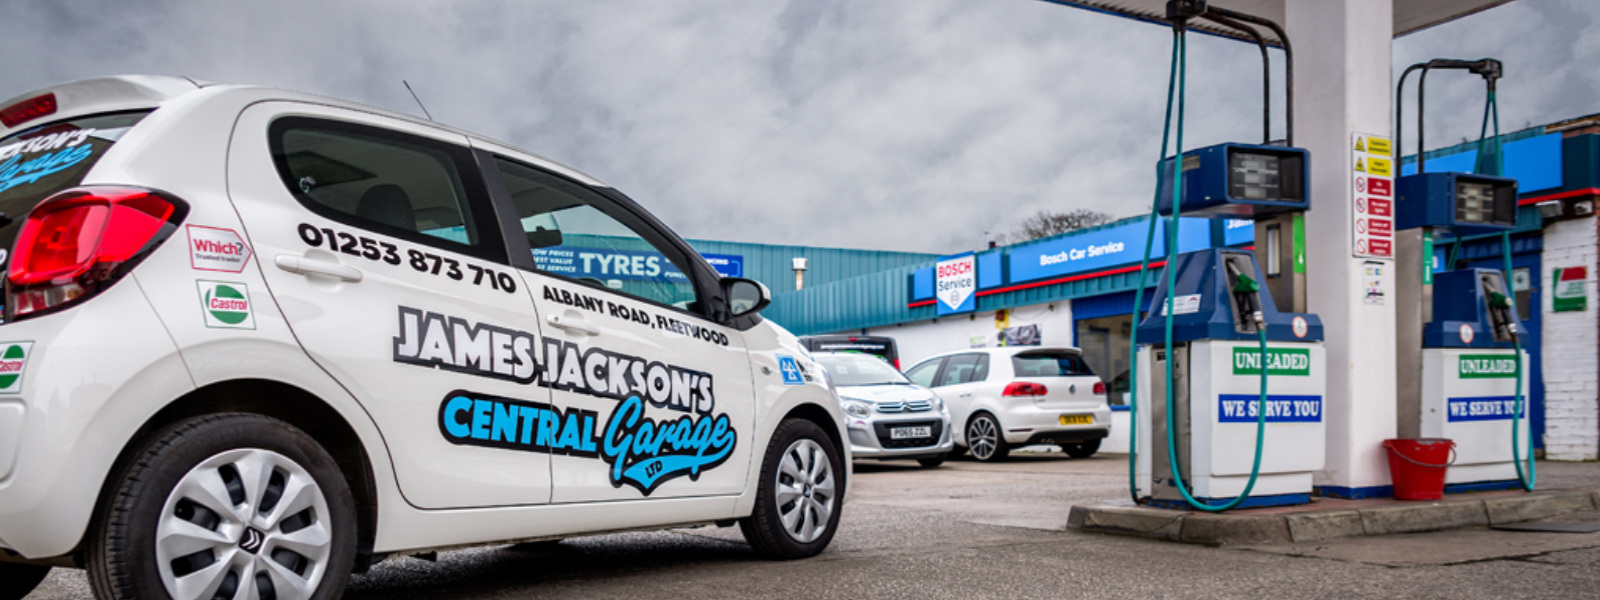 Garage Services in Fleetwood